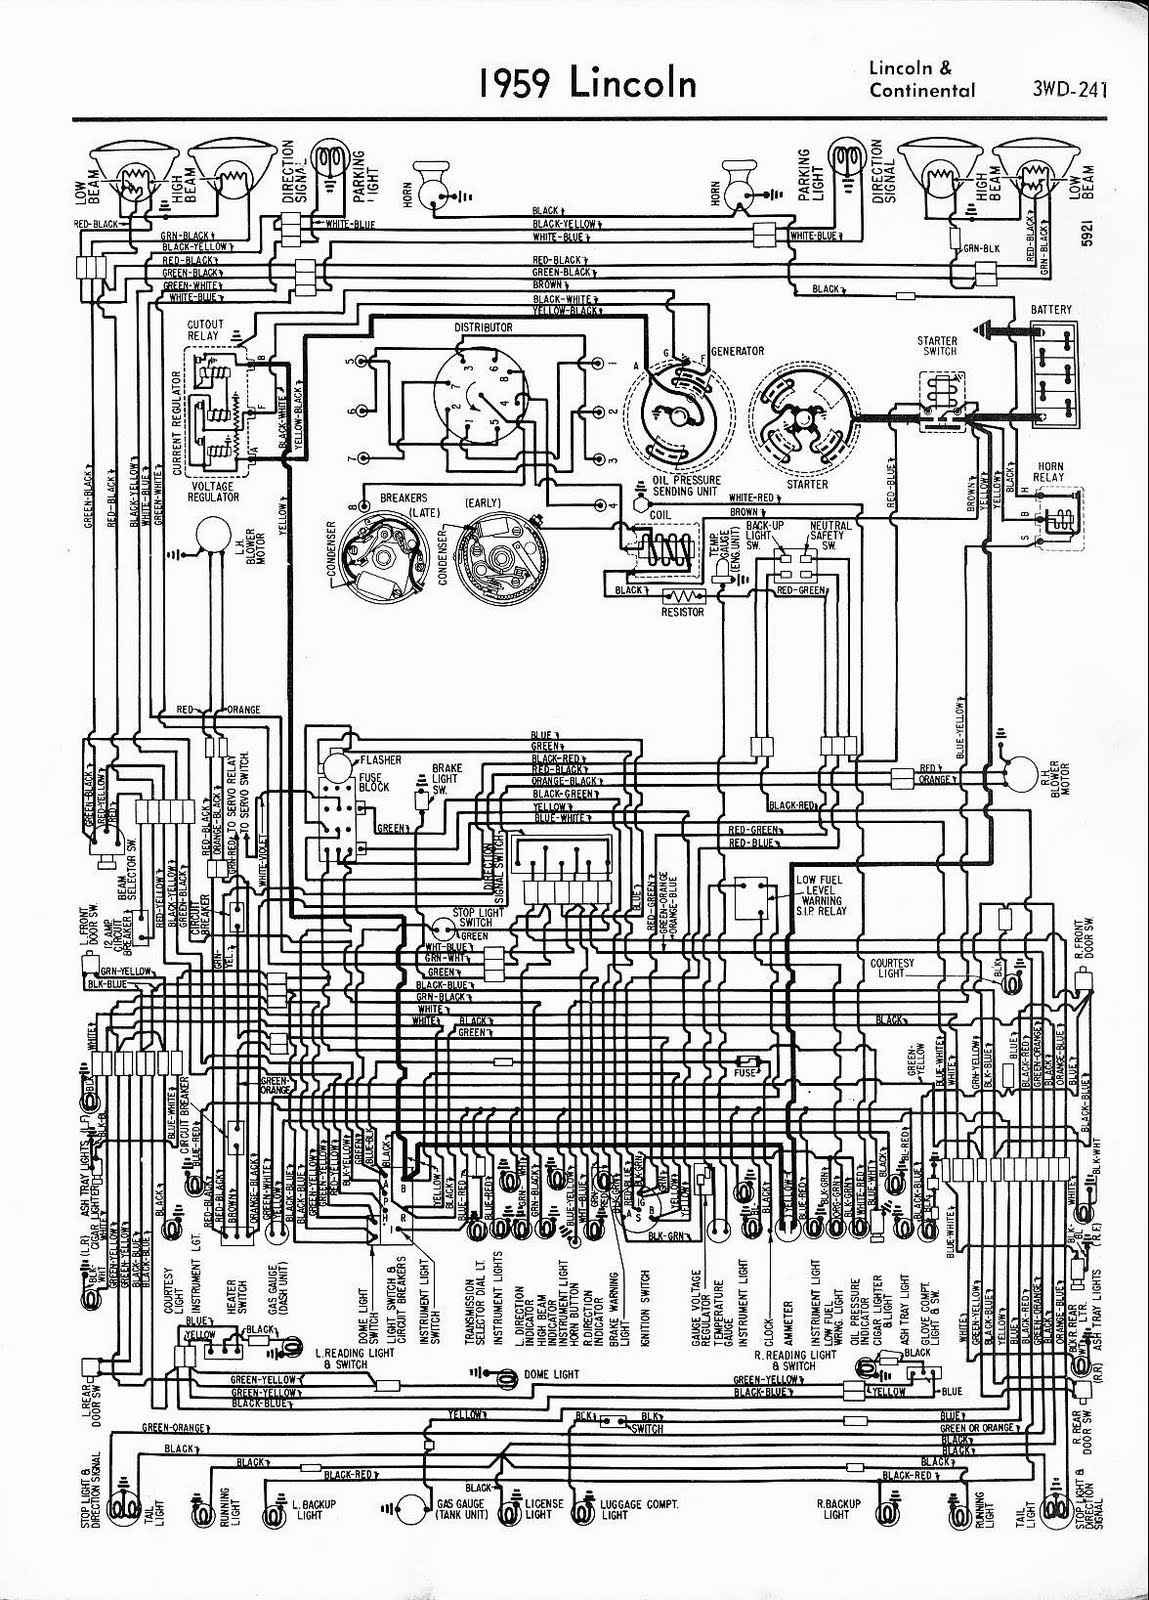 Free Auto Wiring Diagram: 1959 Lincoln Continental Wiring